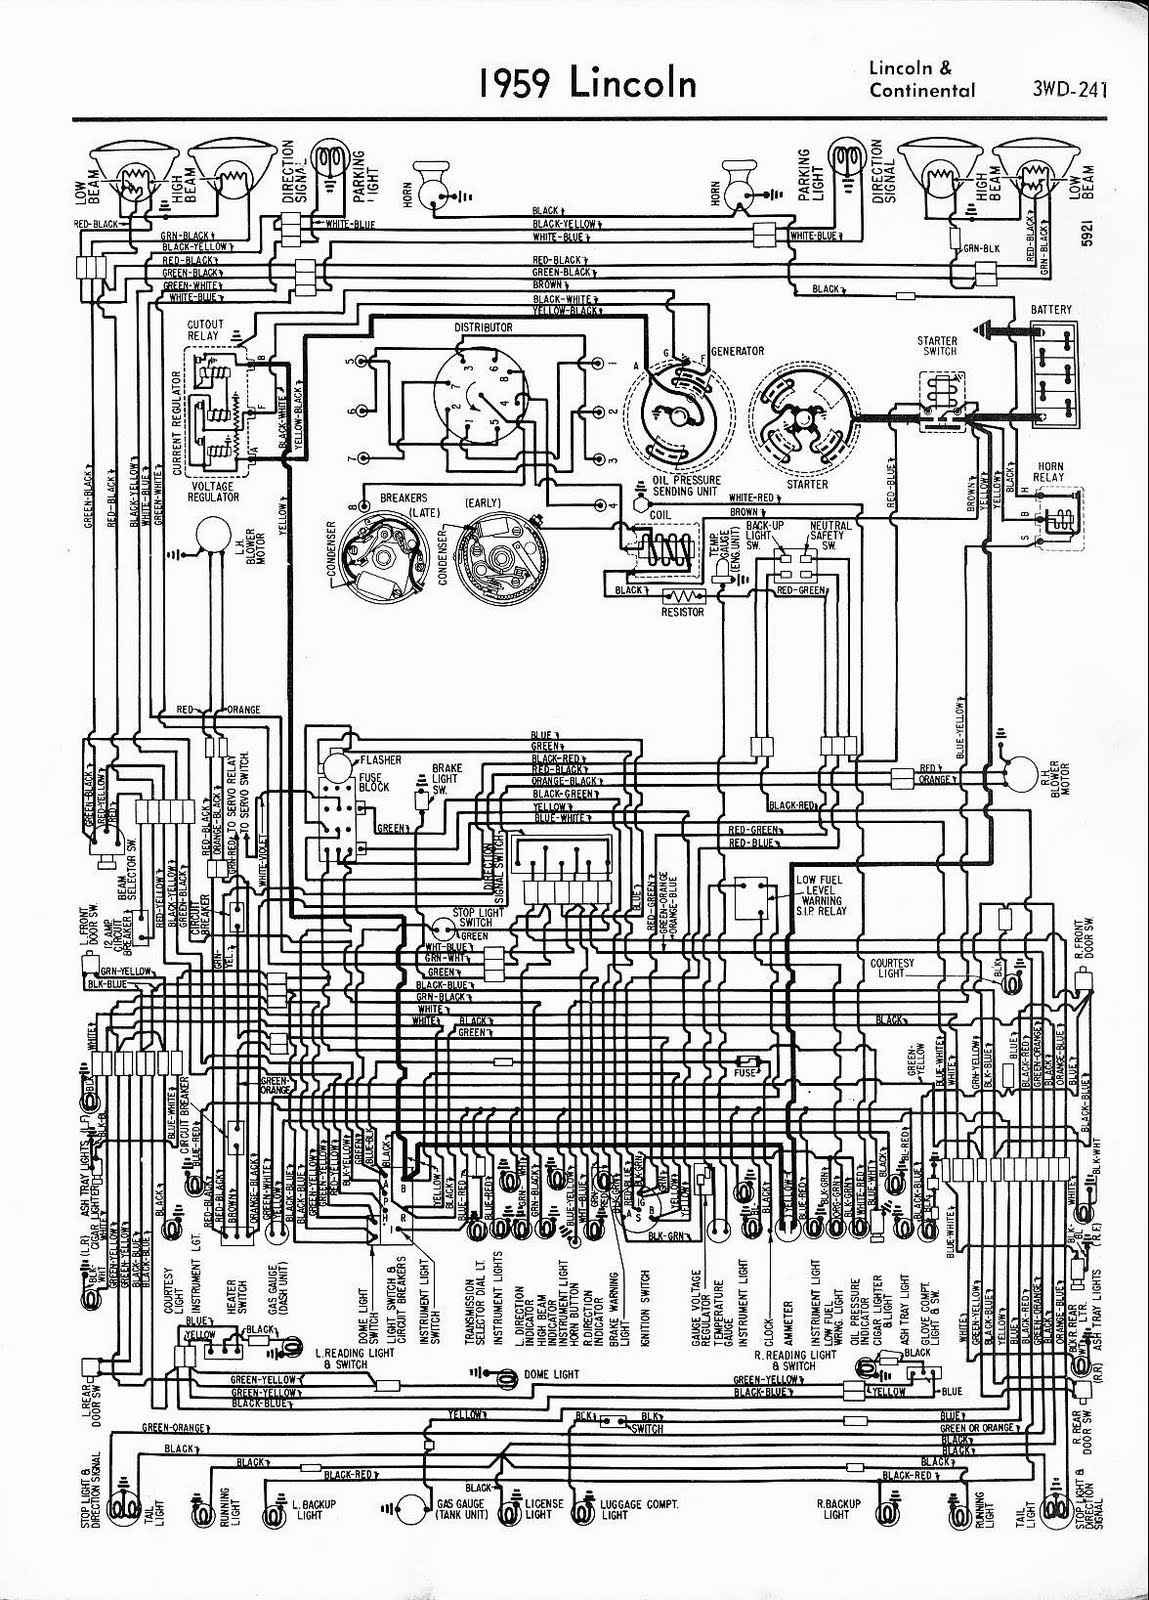 Free Auto Wiring Diagram: 1959 Lincoln Continental Wiring